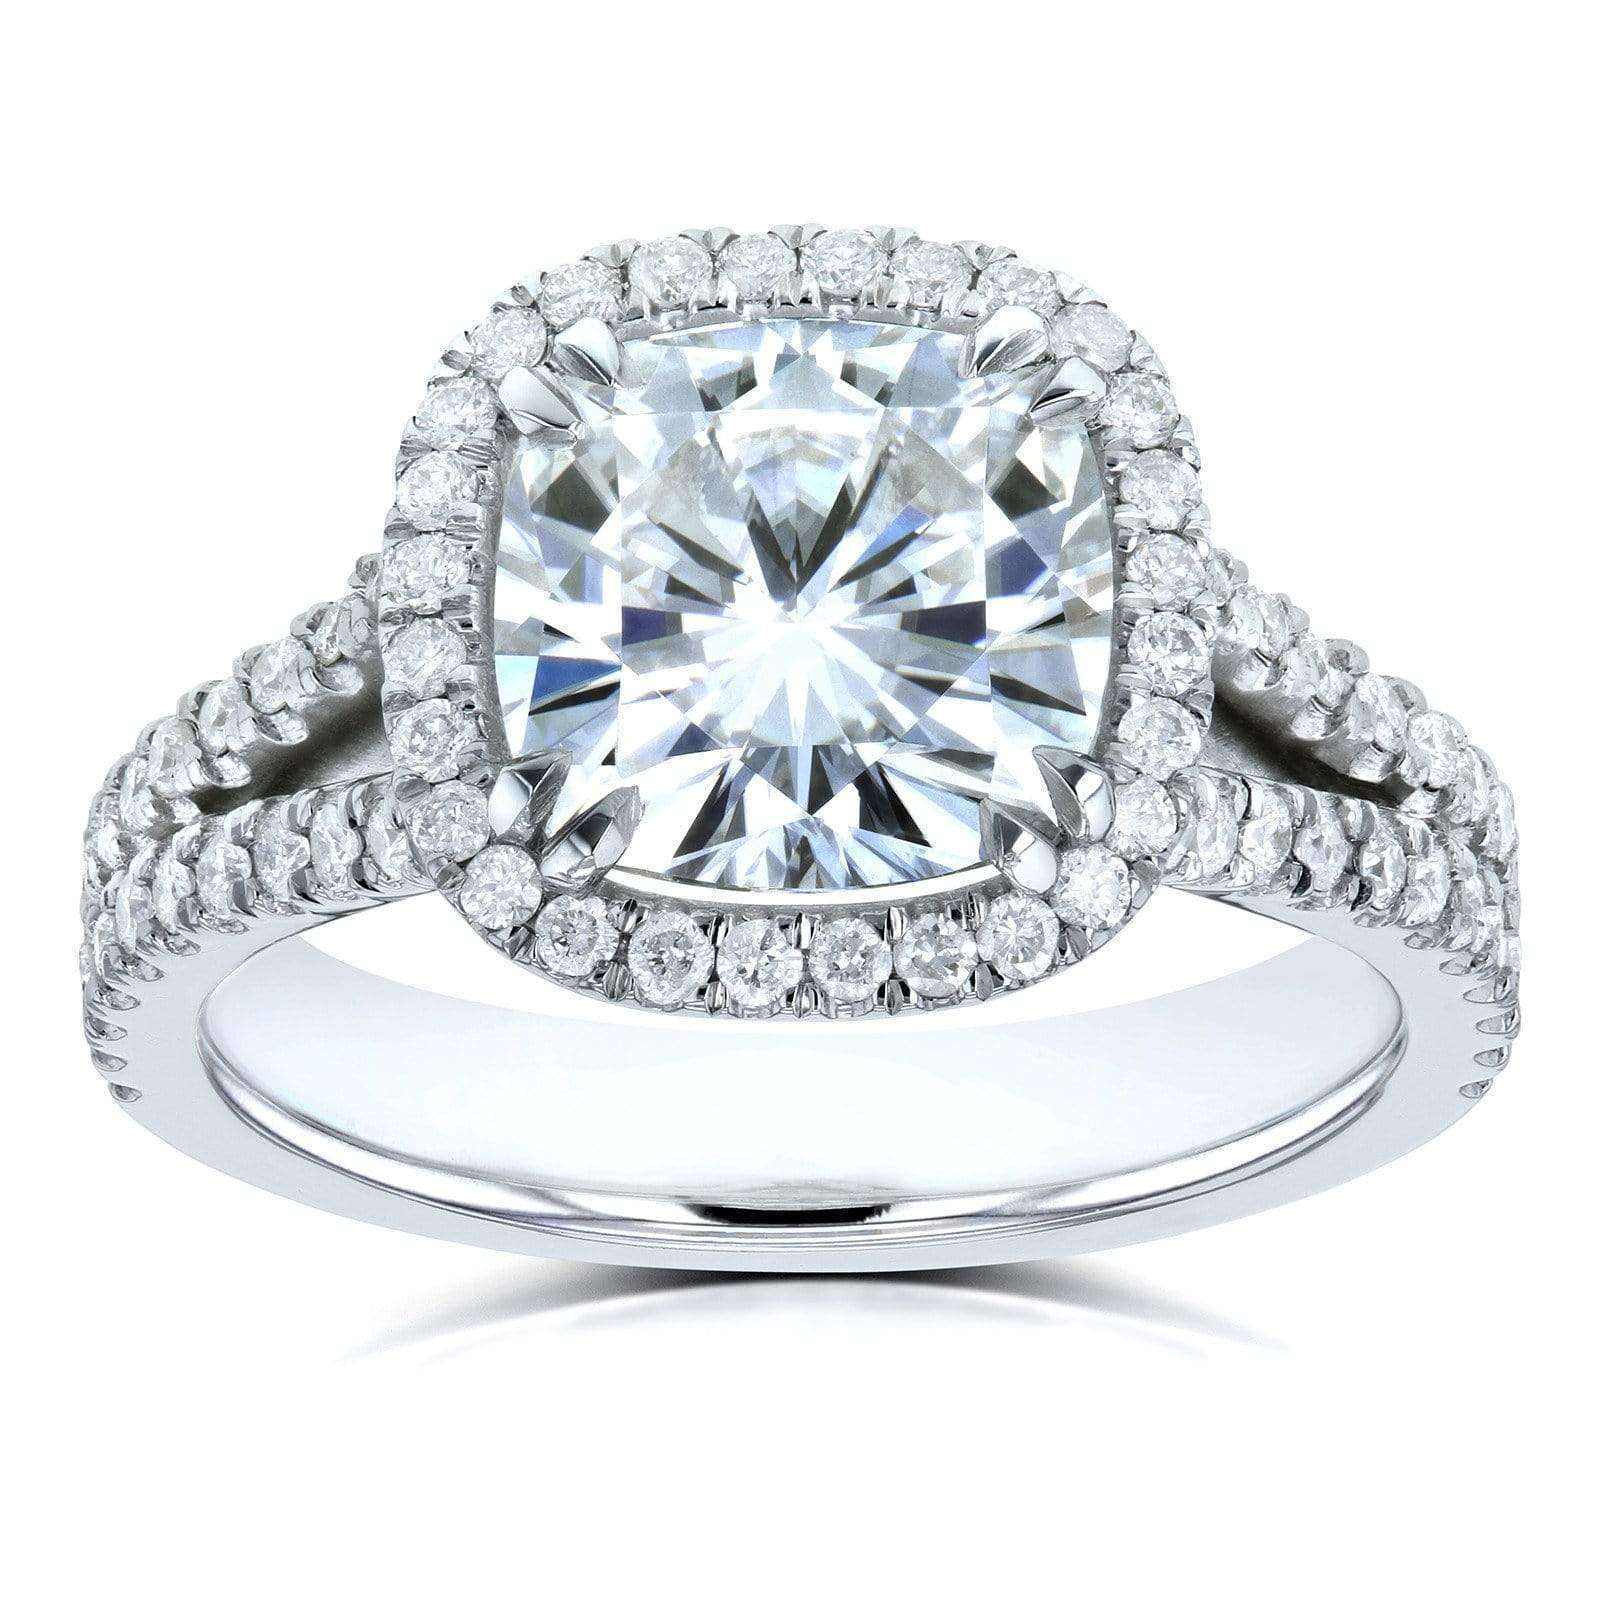 Coupons Cushion D-E-F Moissanite with Diamond Split Shank Halo Engagement Ring 3 1/3 CTW 14k White Gold - 5.5